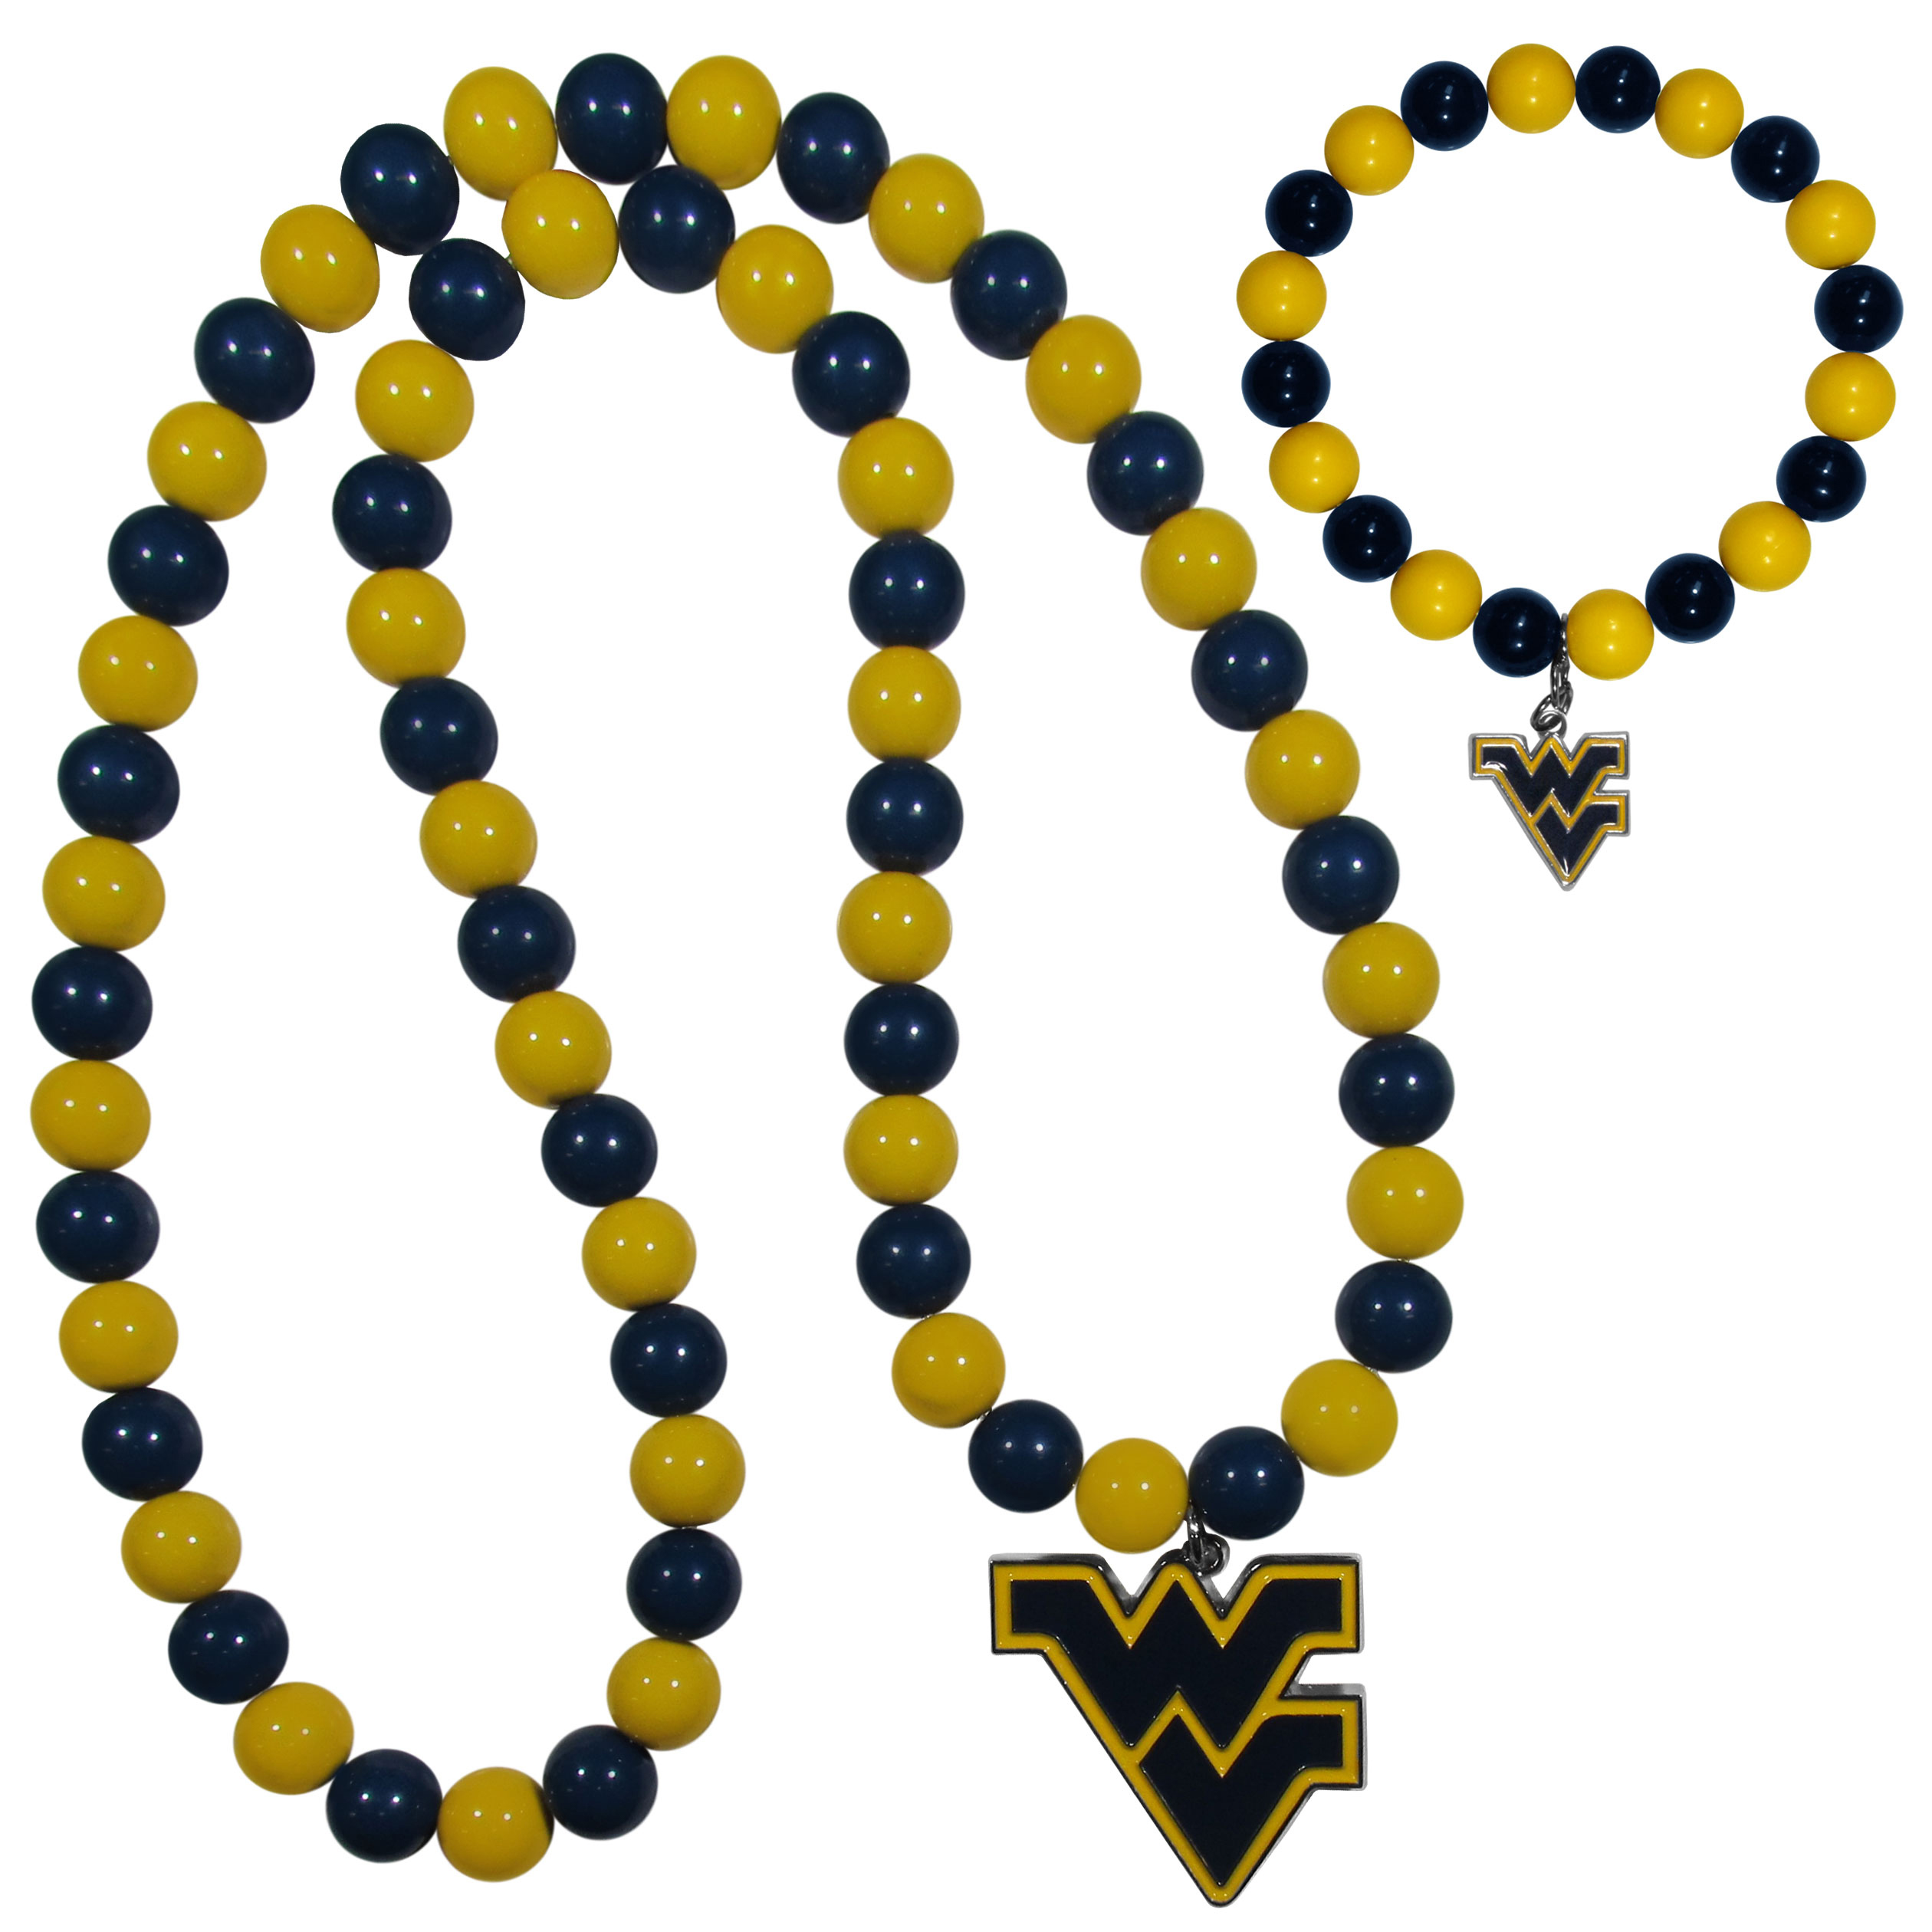 W. Virginia Mountaineers Fan Bead Necklace and Bracelet Set - These fun and colorful W. Virginia Mountaineers fan bead jewelry pieces are an eyecatching way to show off your team spirit. The striking necklace is a 24 inch string of alternating team colored beads with a large team pendant. The mathcing bracelet has alternating team colored beads on a stretch cord and features a matching team charm.